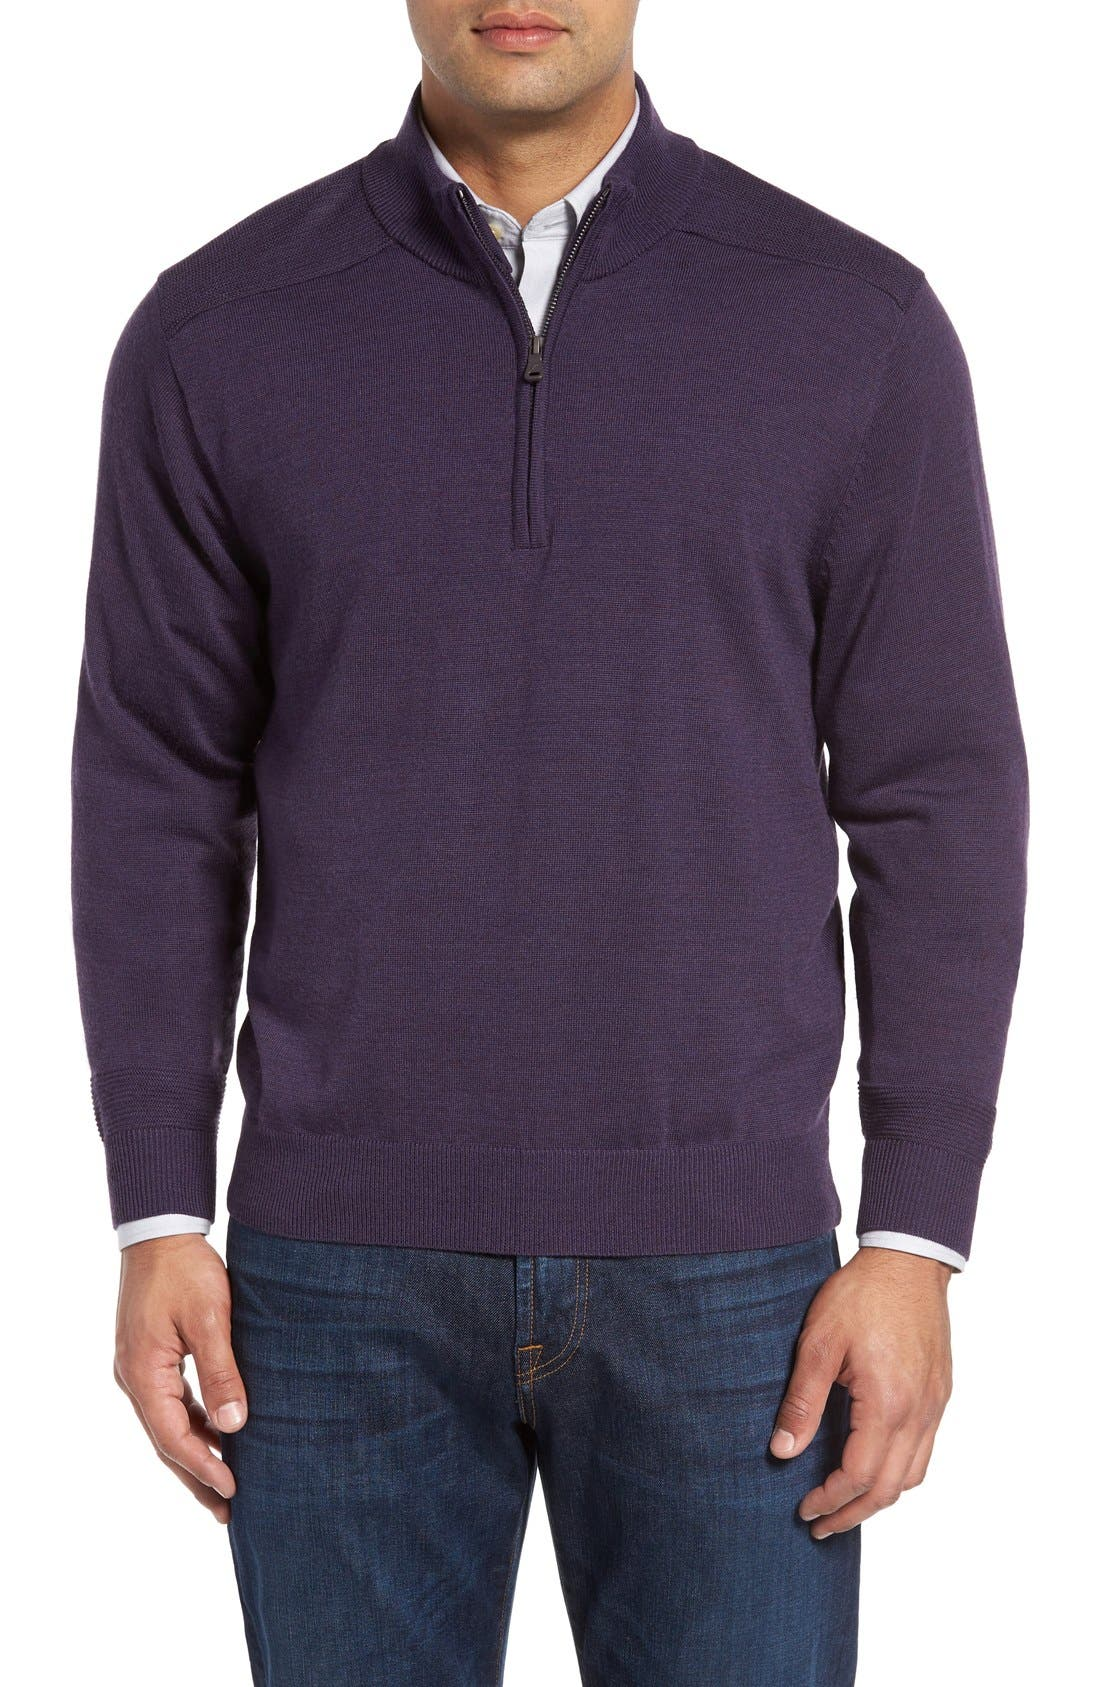 Cutter & Buck 'Douglas' Quarter Zip Wool Blend Sweater (Big & Tall)